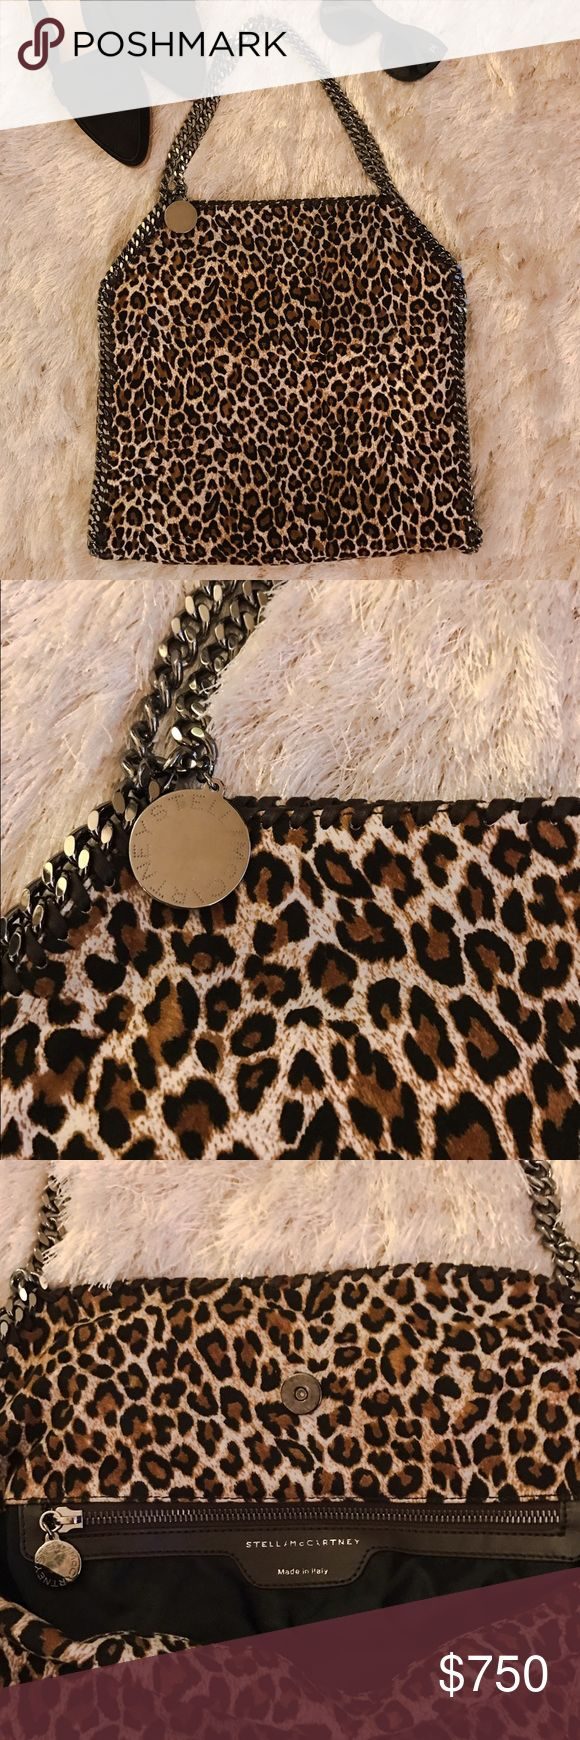 ⚡️lowest⚡️ STELLA MCCARTNEY Falabella Eco Leo Tote Authentic Falabella small tote in leopard with silver hardware. Pre-loved and in great condition. Minor scuffs on hardware. Made of  88% polyester & 12% polyurethane. Original dust bag included. This small tote holds a lot, perfect for every day use without being too big and bulky. Decided to sell because I just got the new Falabella with fringe 😍 Stella McCartney Bags Totes